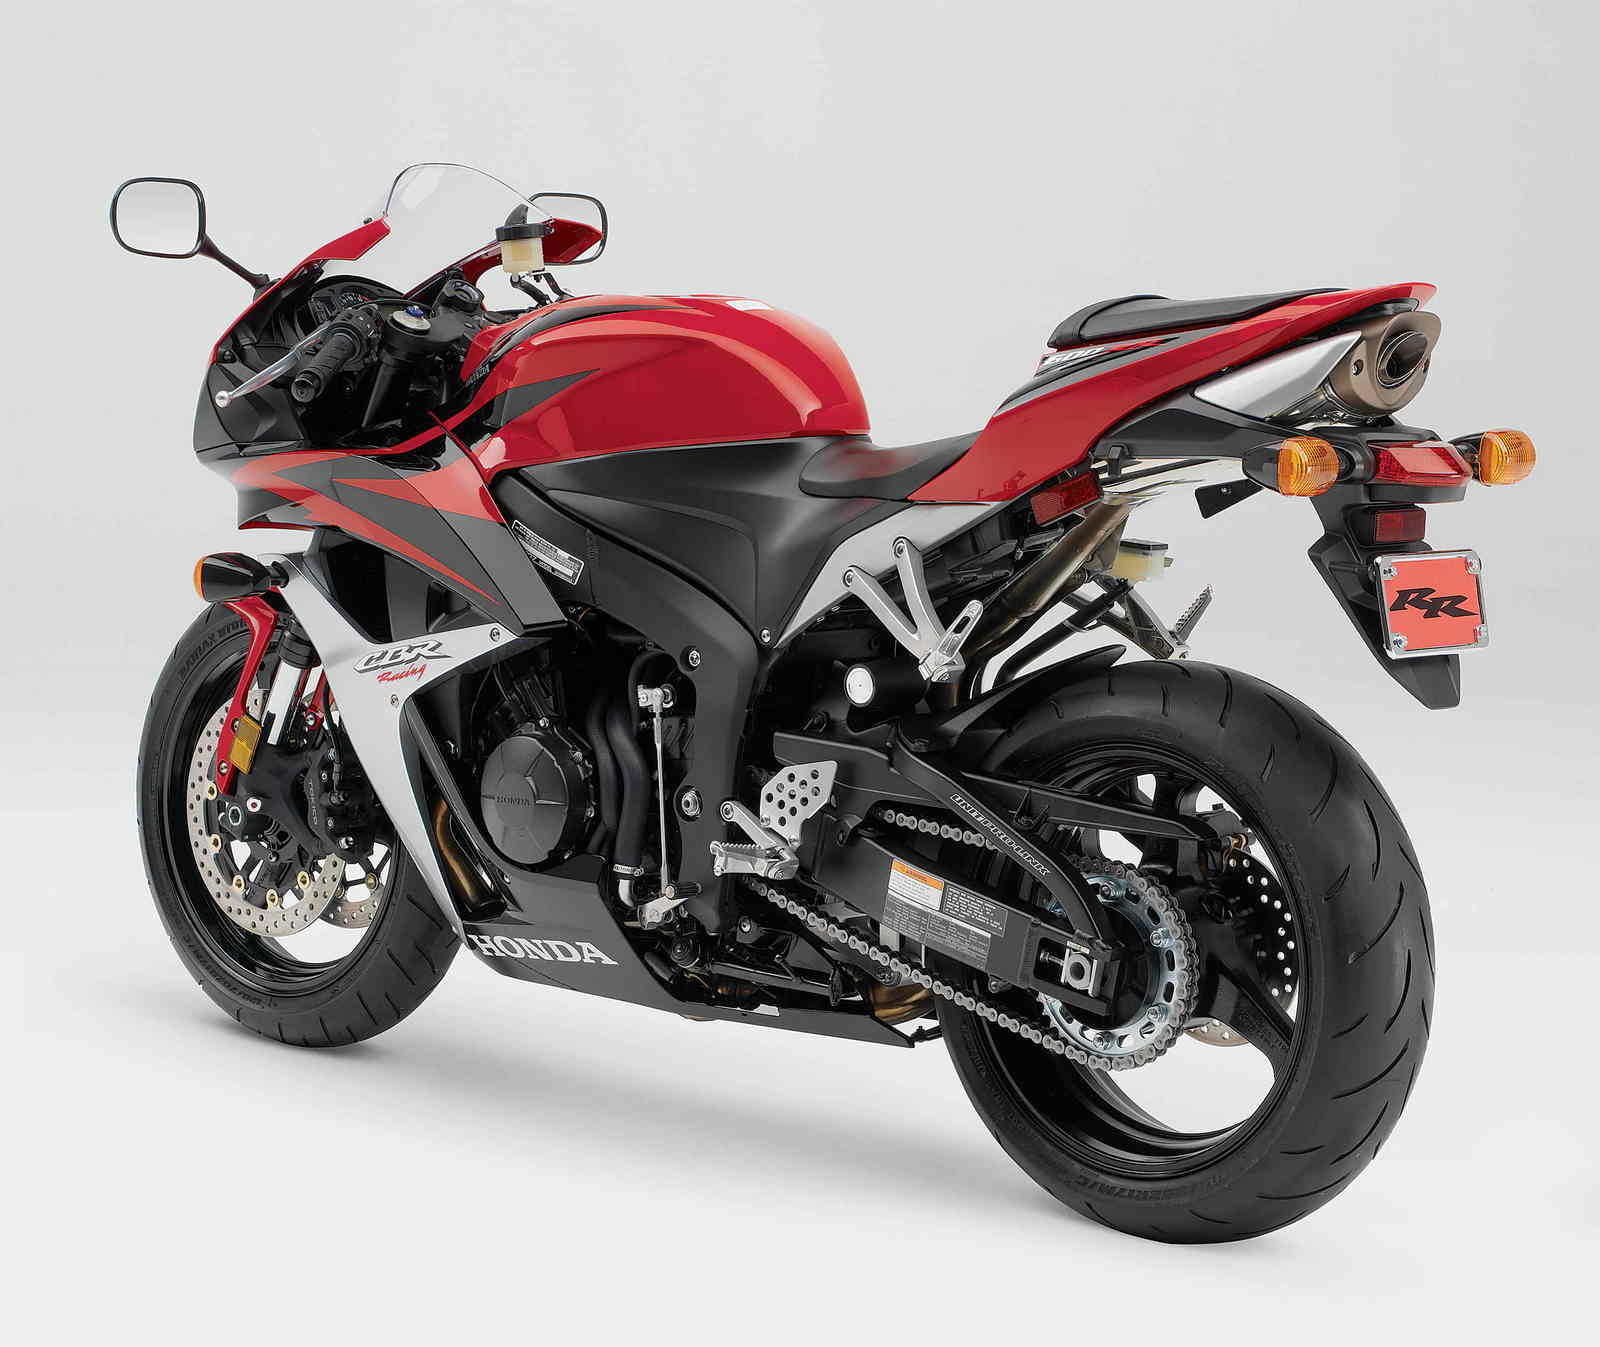 Motorcycle Review Top Speed: 2007 Honda CBR 600RR - Picture 106656